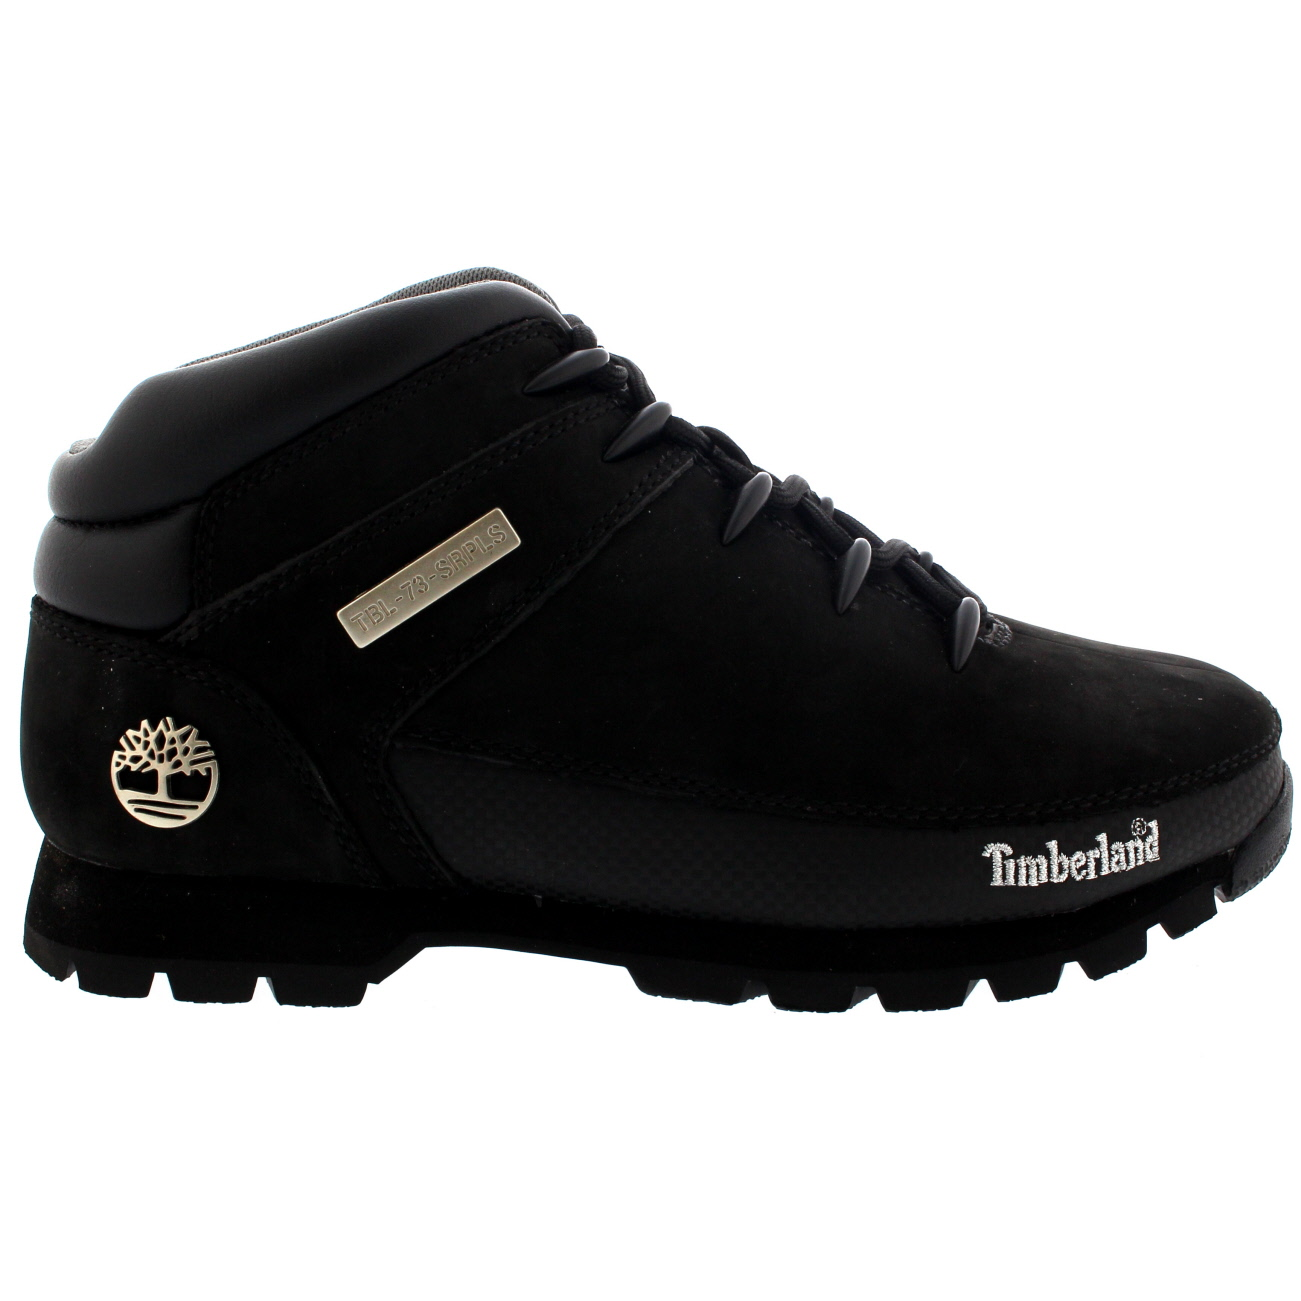 Discounted Timberland Euro Sprint Tree Boot Black Smooth